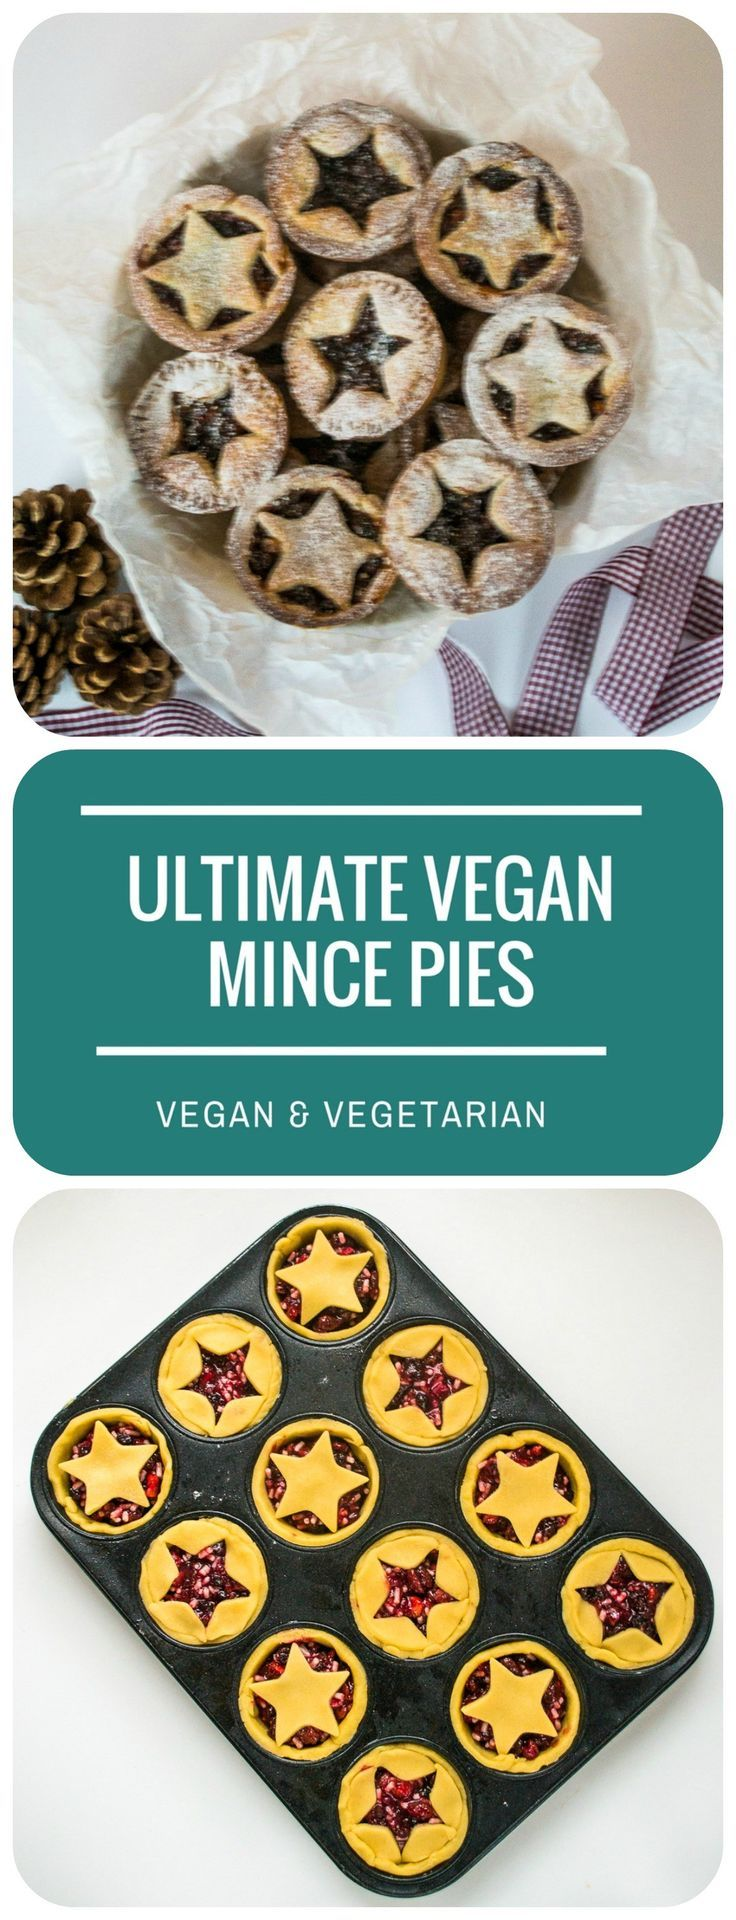 These 'Ultimate Vegan Mince Pies' are made with incredibly rich and crumbly dairy-free cream 'cheese' pastry, your guests won't believe these are vegan!